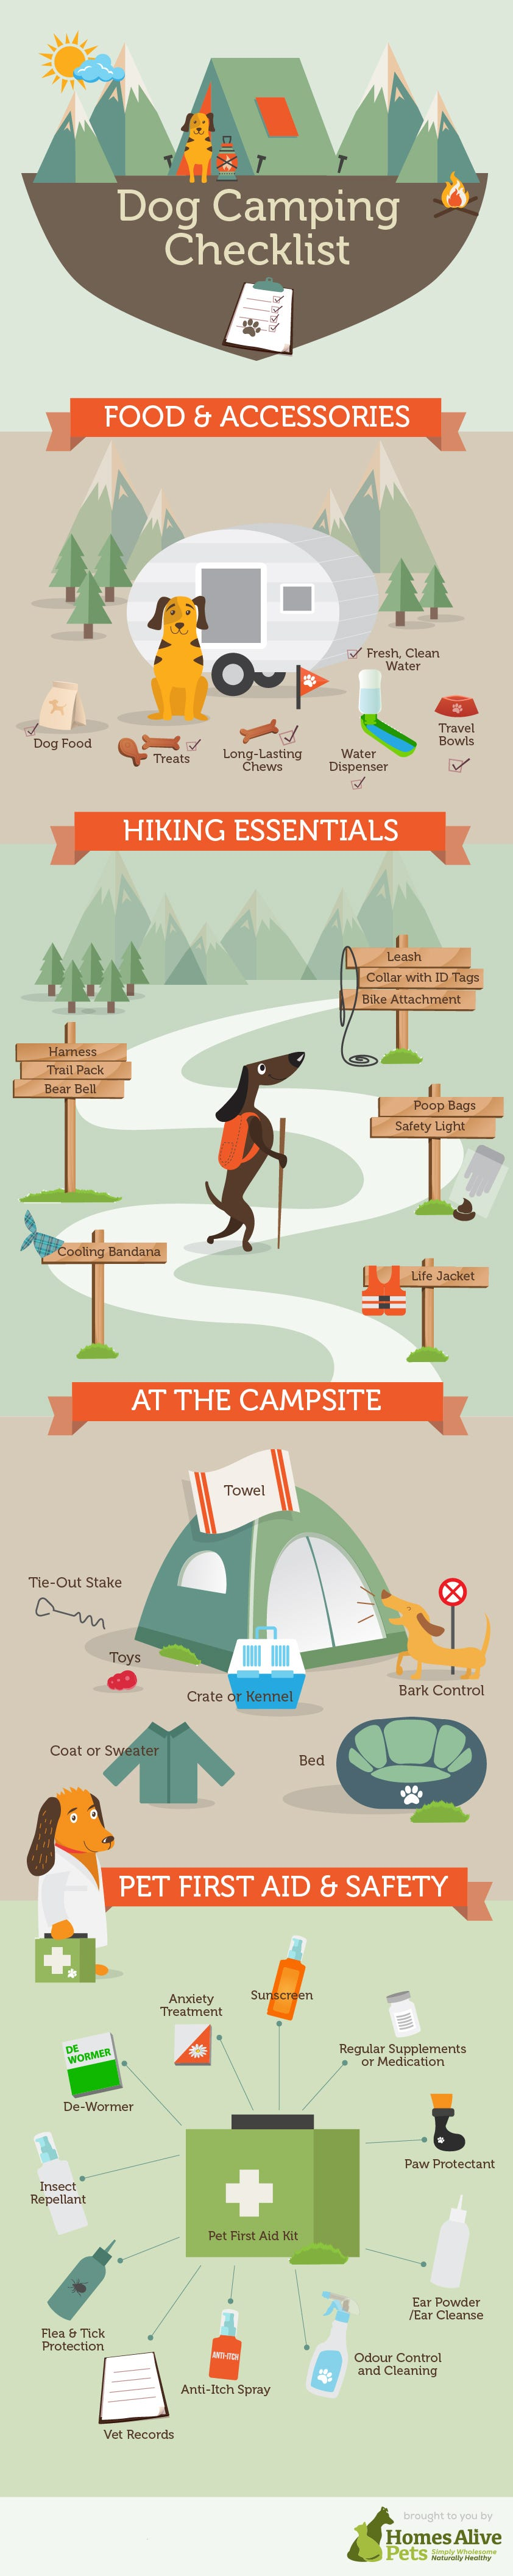 Dog Camping Checklist Infographic